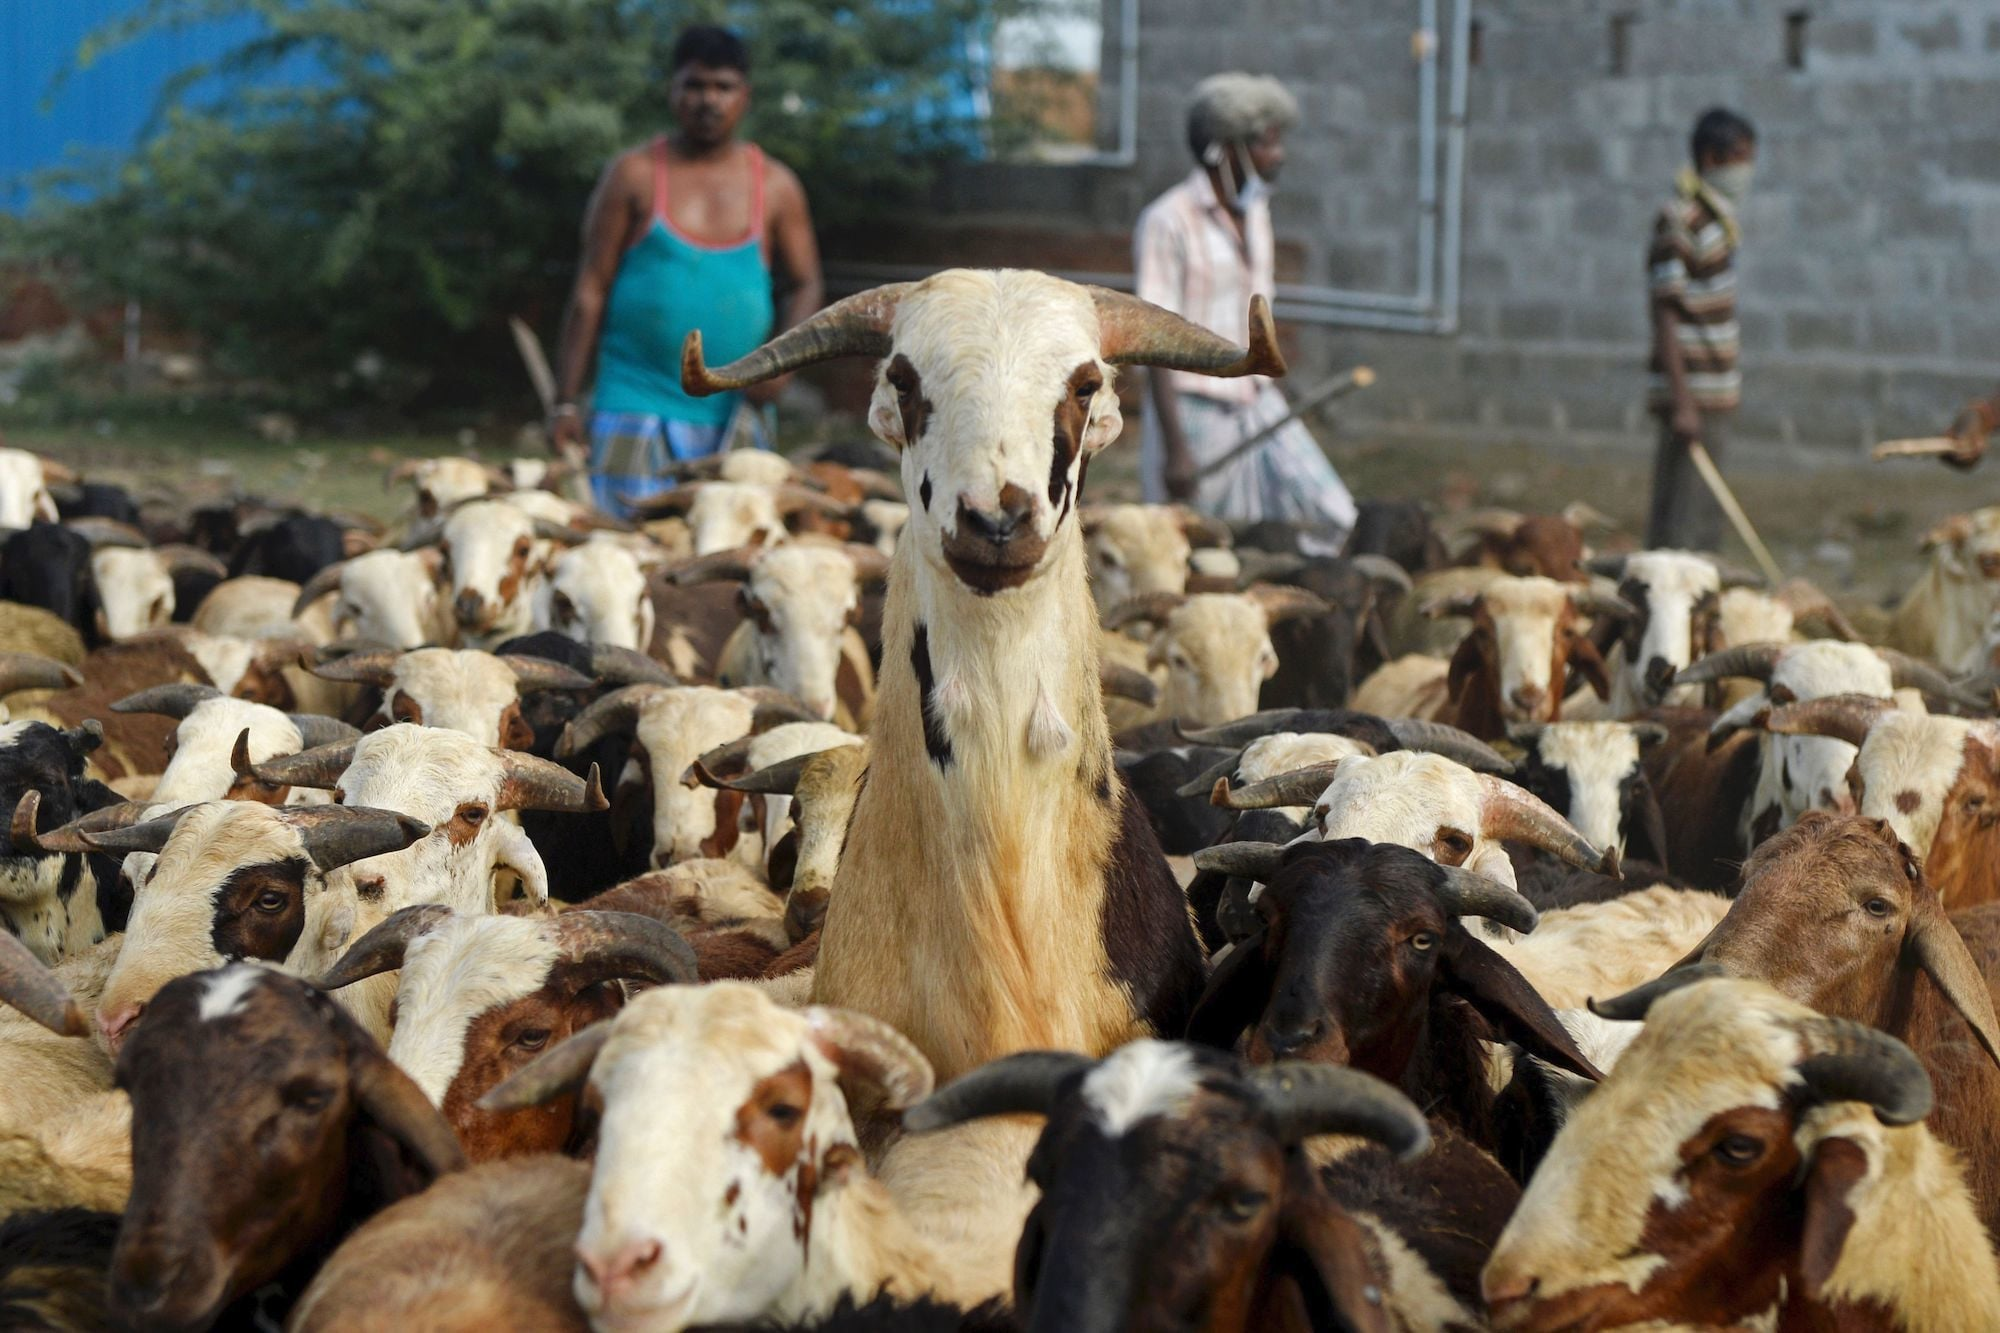 Livestock vendors wait for customers to sell goats and sheep ahead of the Muslim festival of Eid al-Adha at a ground in Chennai on July 28, 2020. - Eid al-Adha, feast of the sacrifice, marks the end of the Hajj pilgrimage to Mecca and commemorates Prophet Abraham's readiness to sacrifice his son to show obedience to Allah. (Photo by Arun SANKAR / AFP) — AFP or licensors